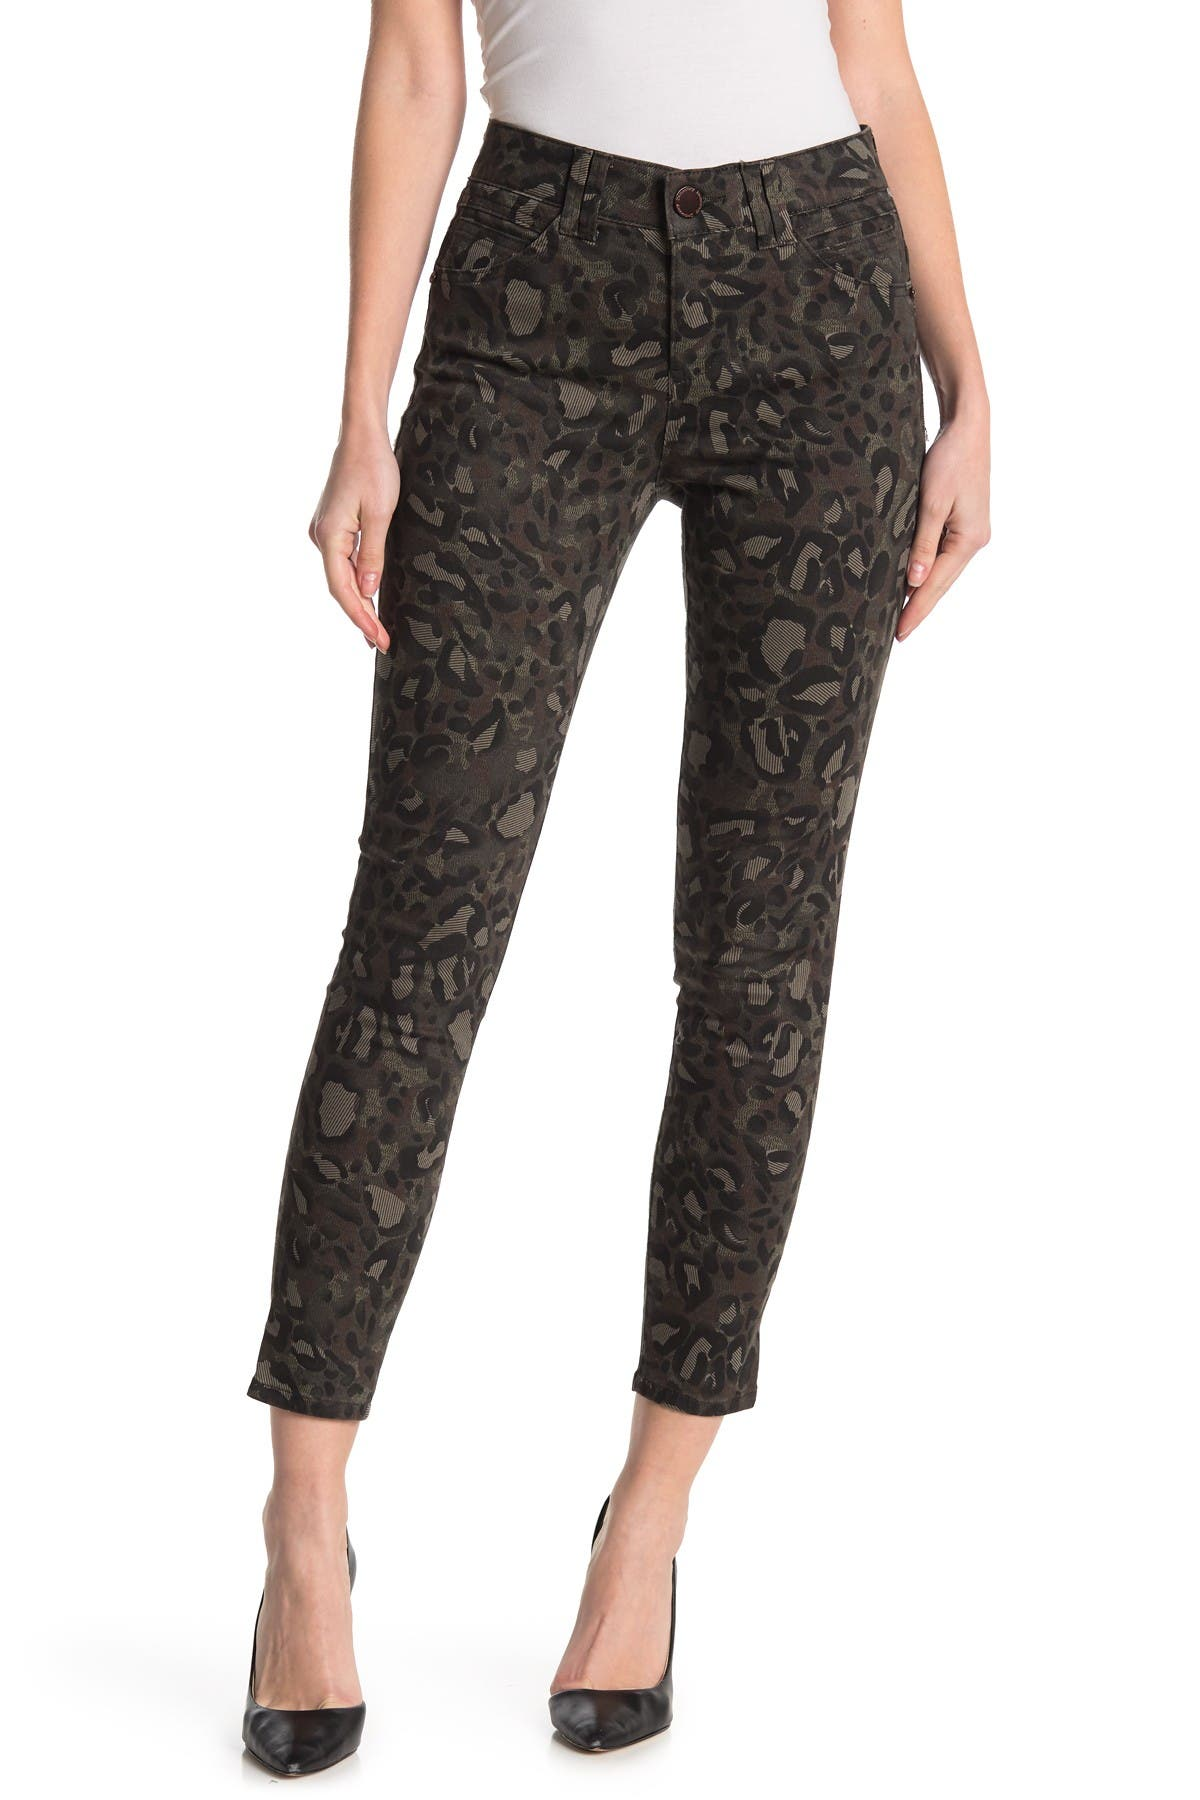 Image of Democracy Leopard Print Ab Technology Jeggings